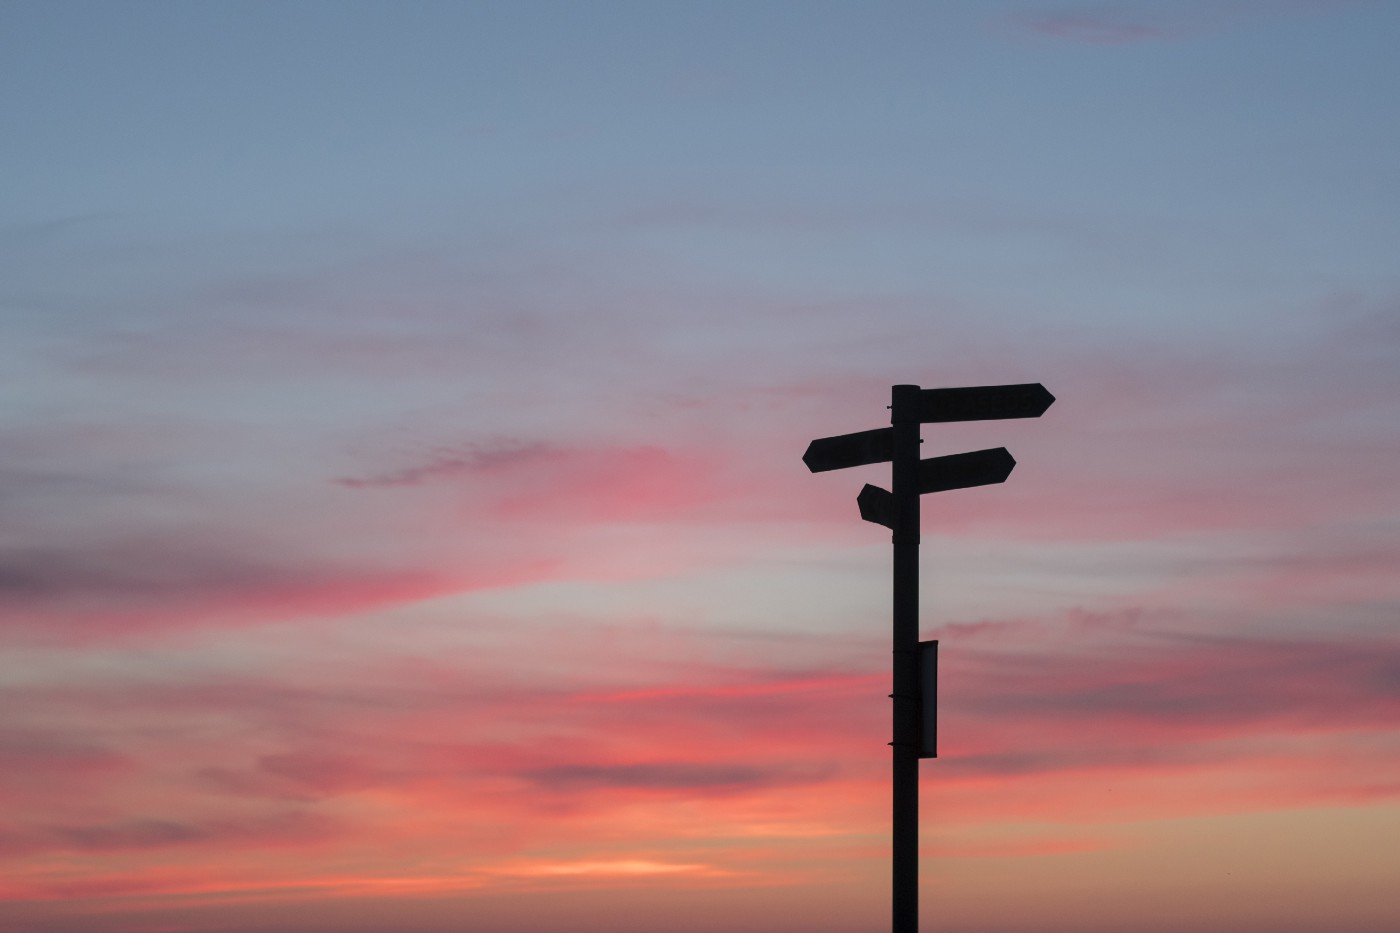 signpost with arrows pointing in several directions, against a sunset sky